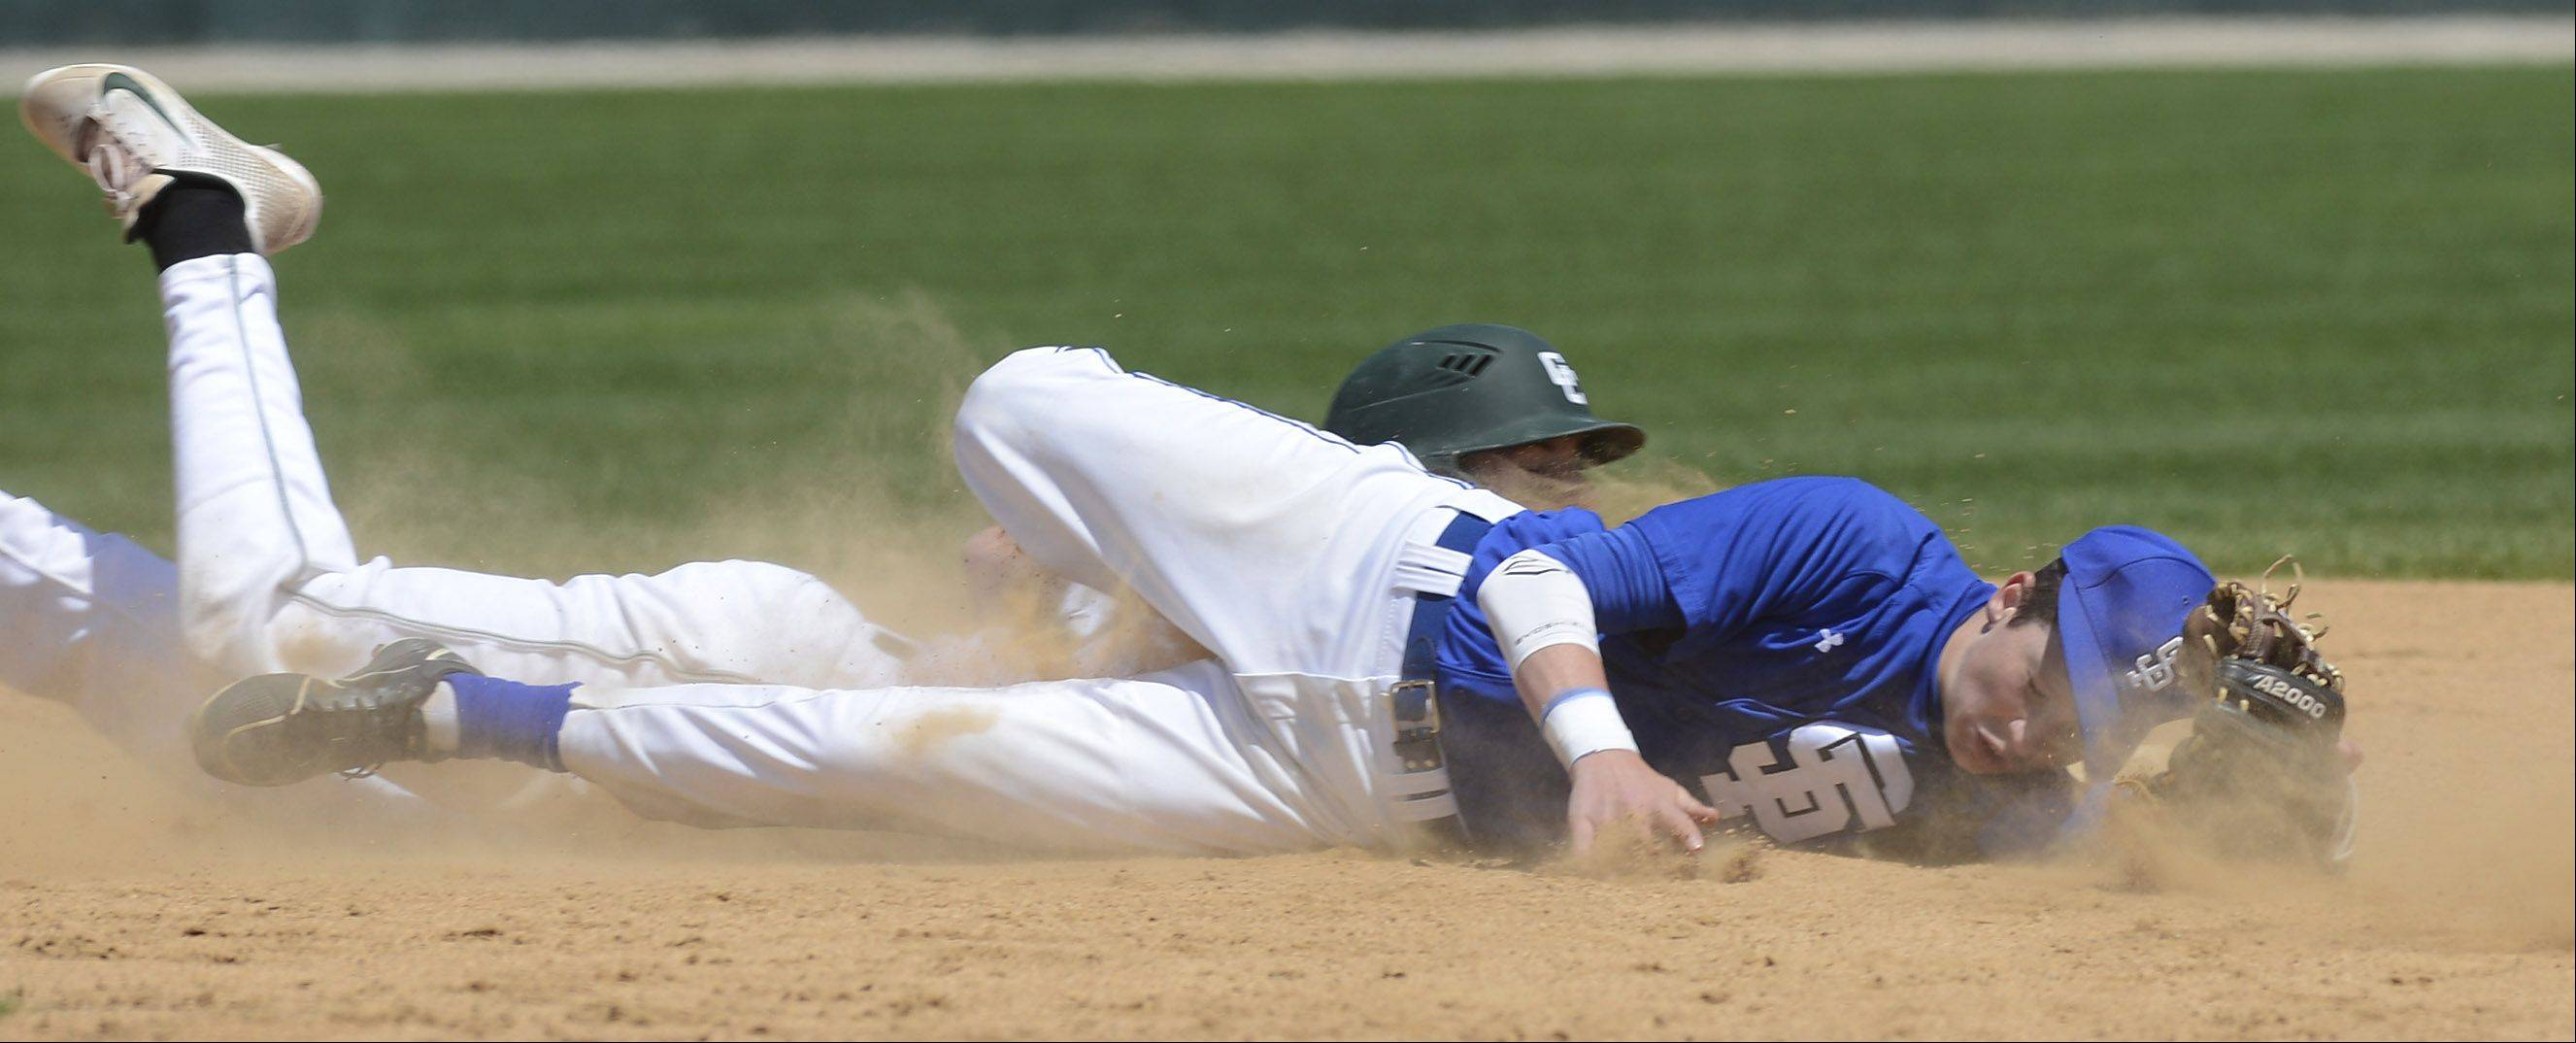 St. Francis second baseman Jack Ciombor lands on the dirt on a wild pickoff attempt on Grayslake Central base runner Matt Loeffl during the Class 3A state baseball semifinal at Silver Cross Field in Joliet on Friday.